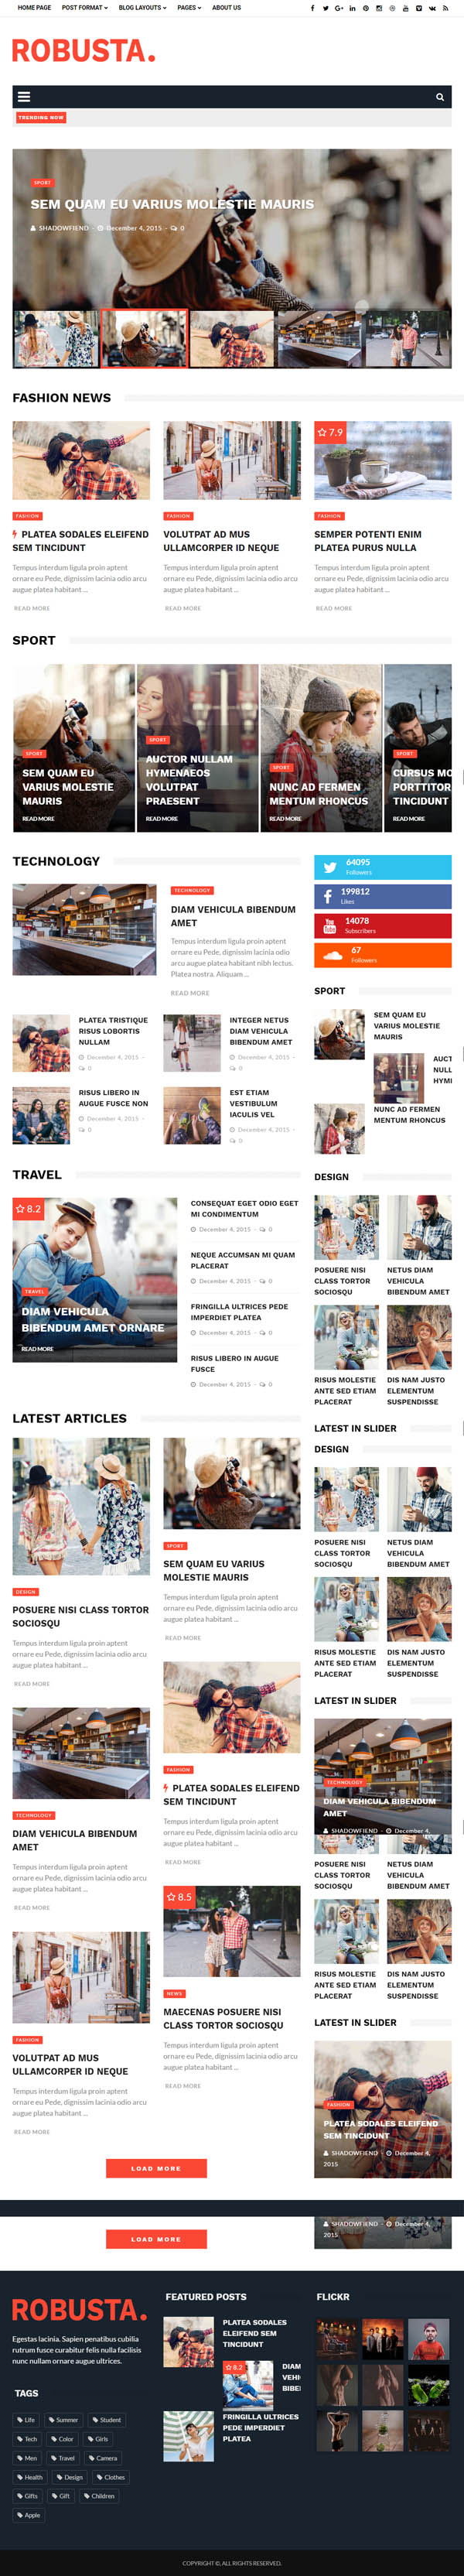 Robusta - Responsive WordPress Magazine and Blog Theme